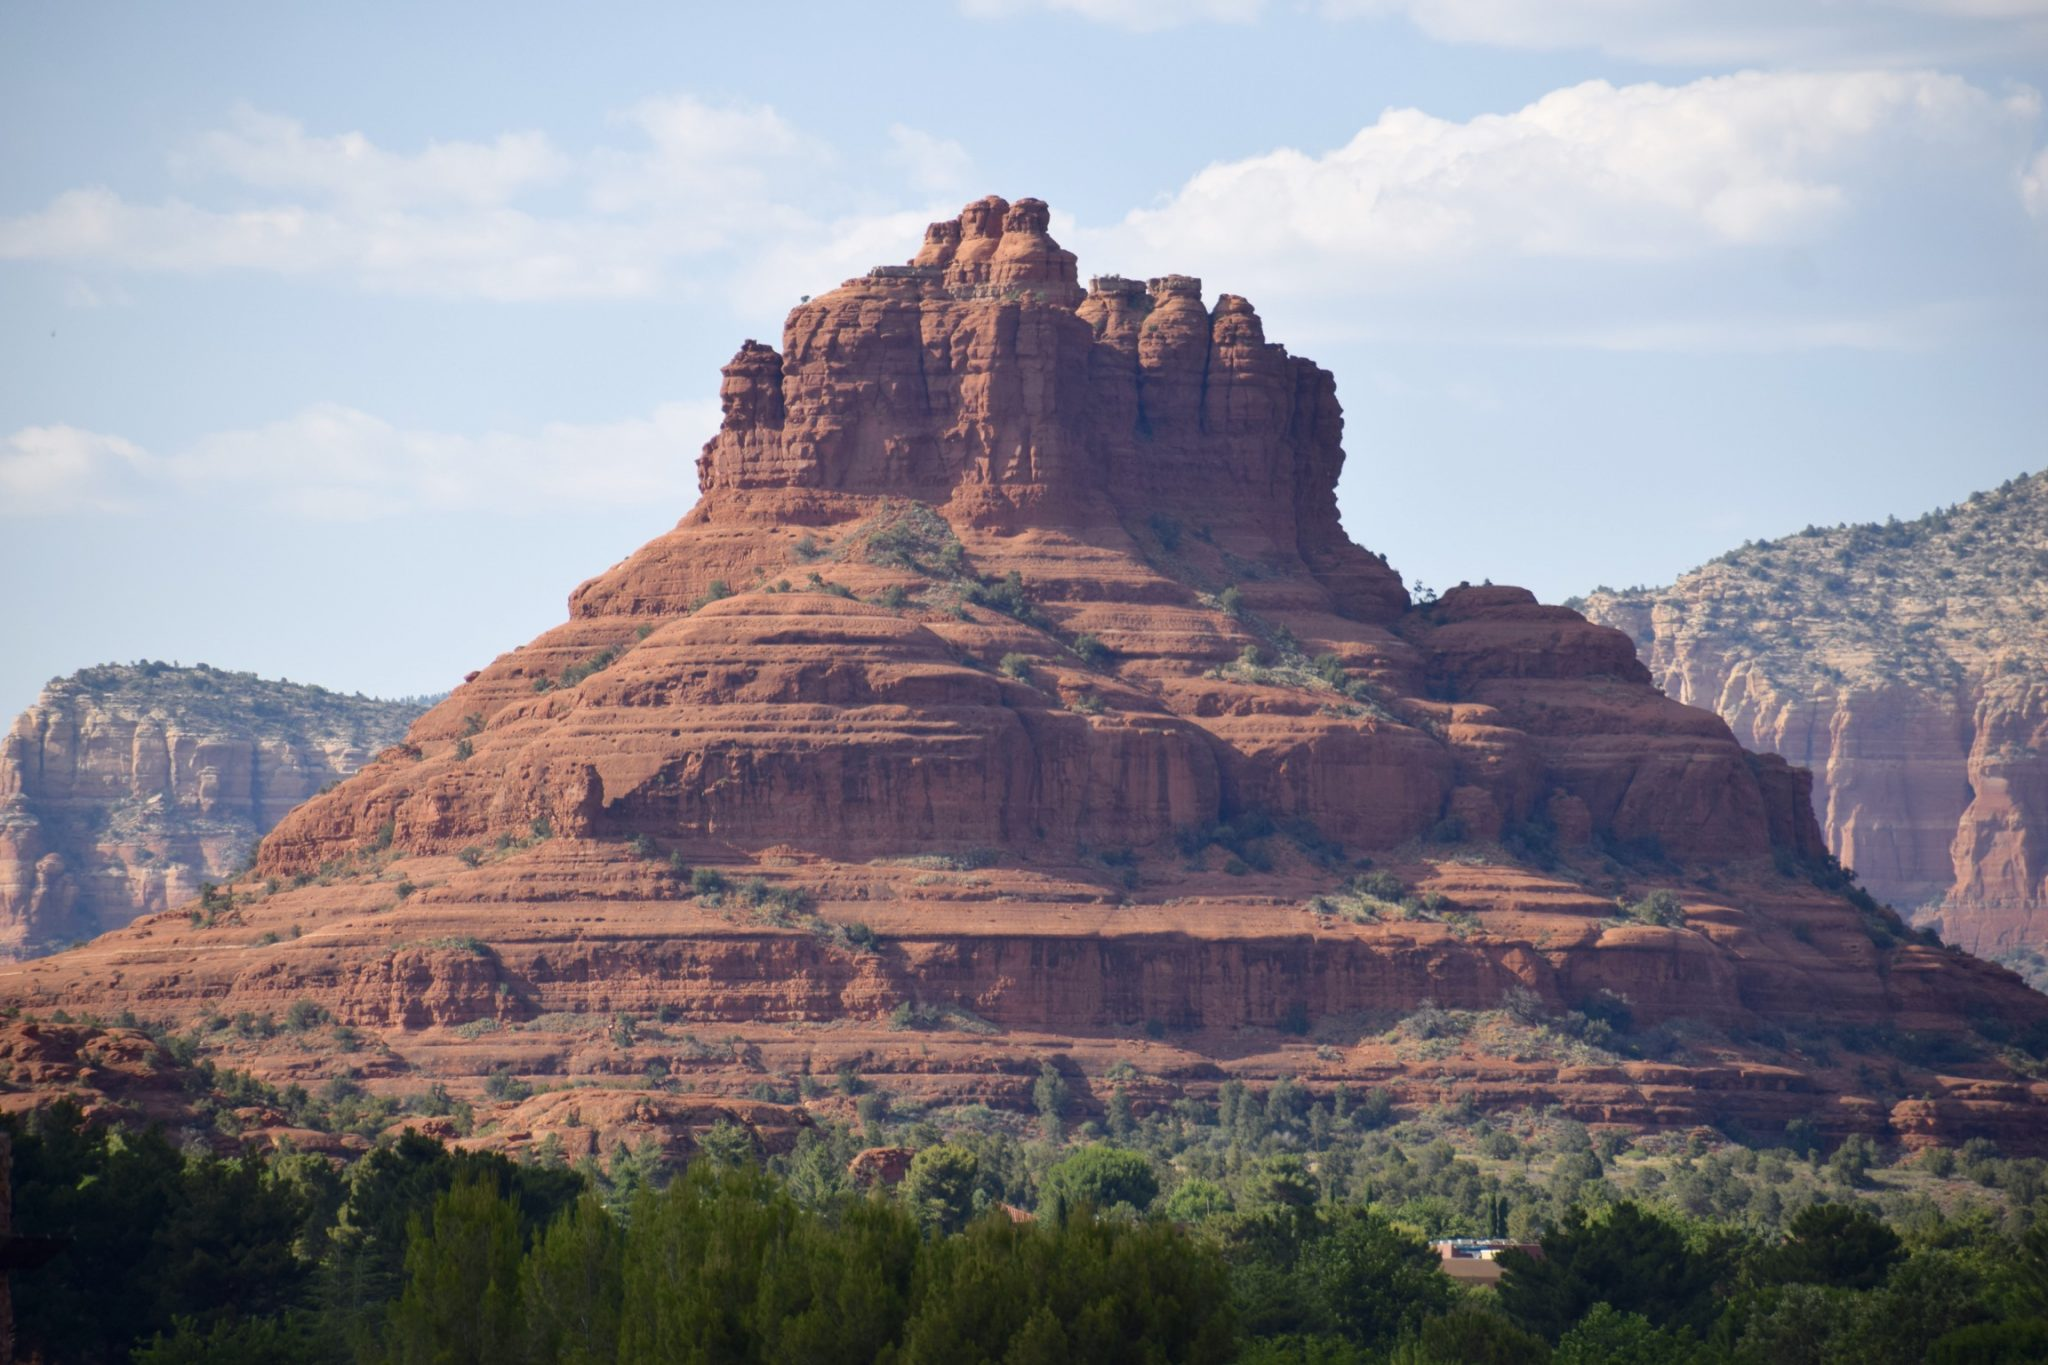 View from Hilton Hotel Bell Rock of Bell Rock in Sedona, Arizona